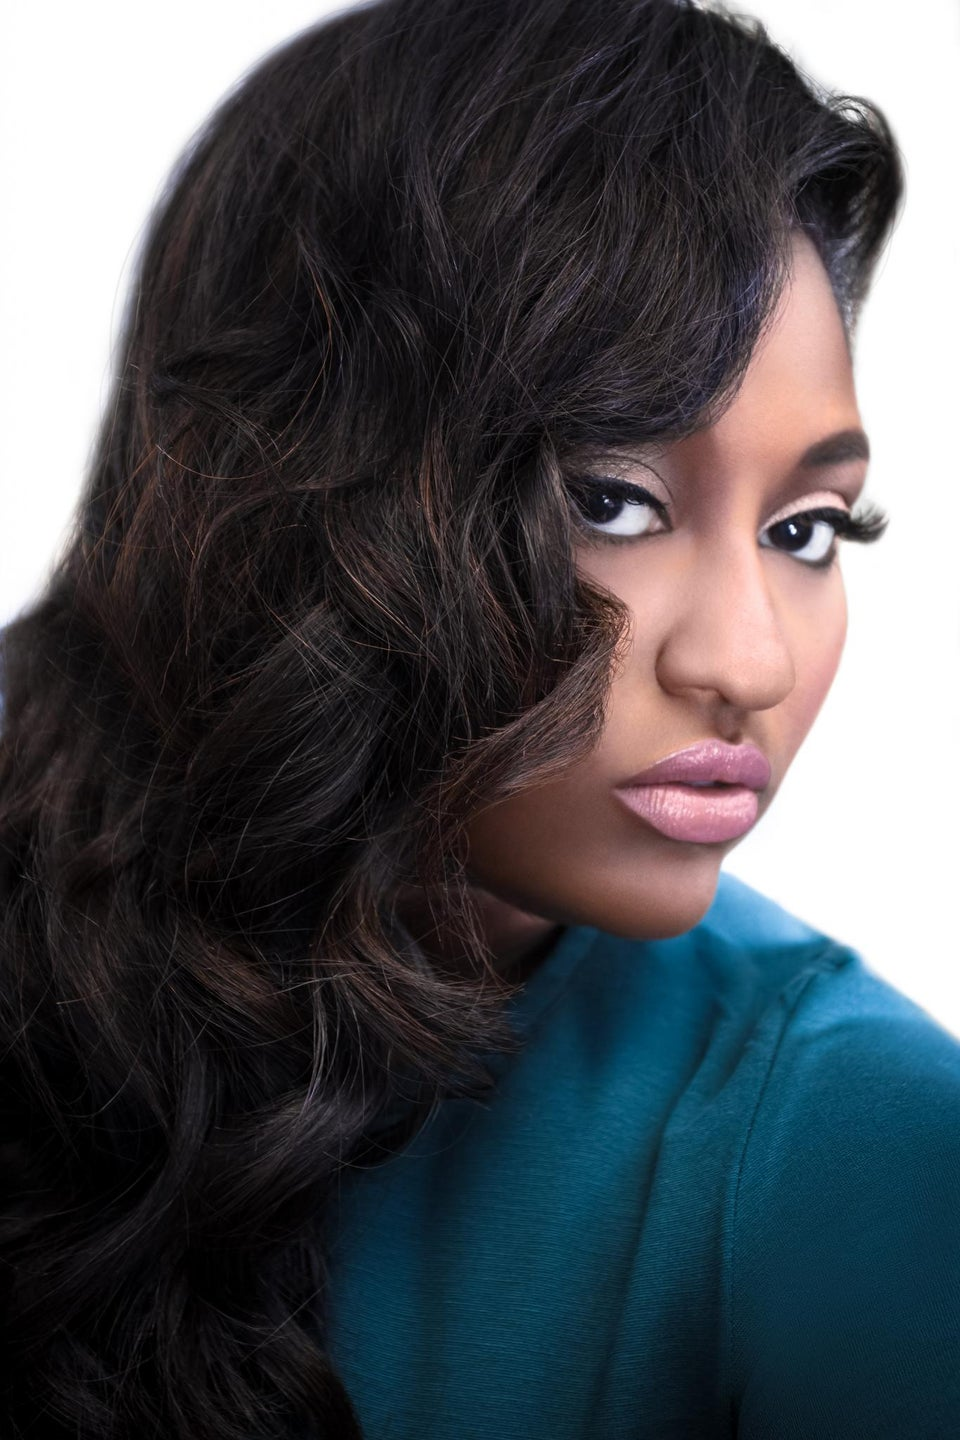 EXCLUSIVE: Jazmine Sullivan Admits She's Nervous About Her Tribute Performance to Kim Burrell